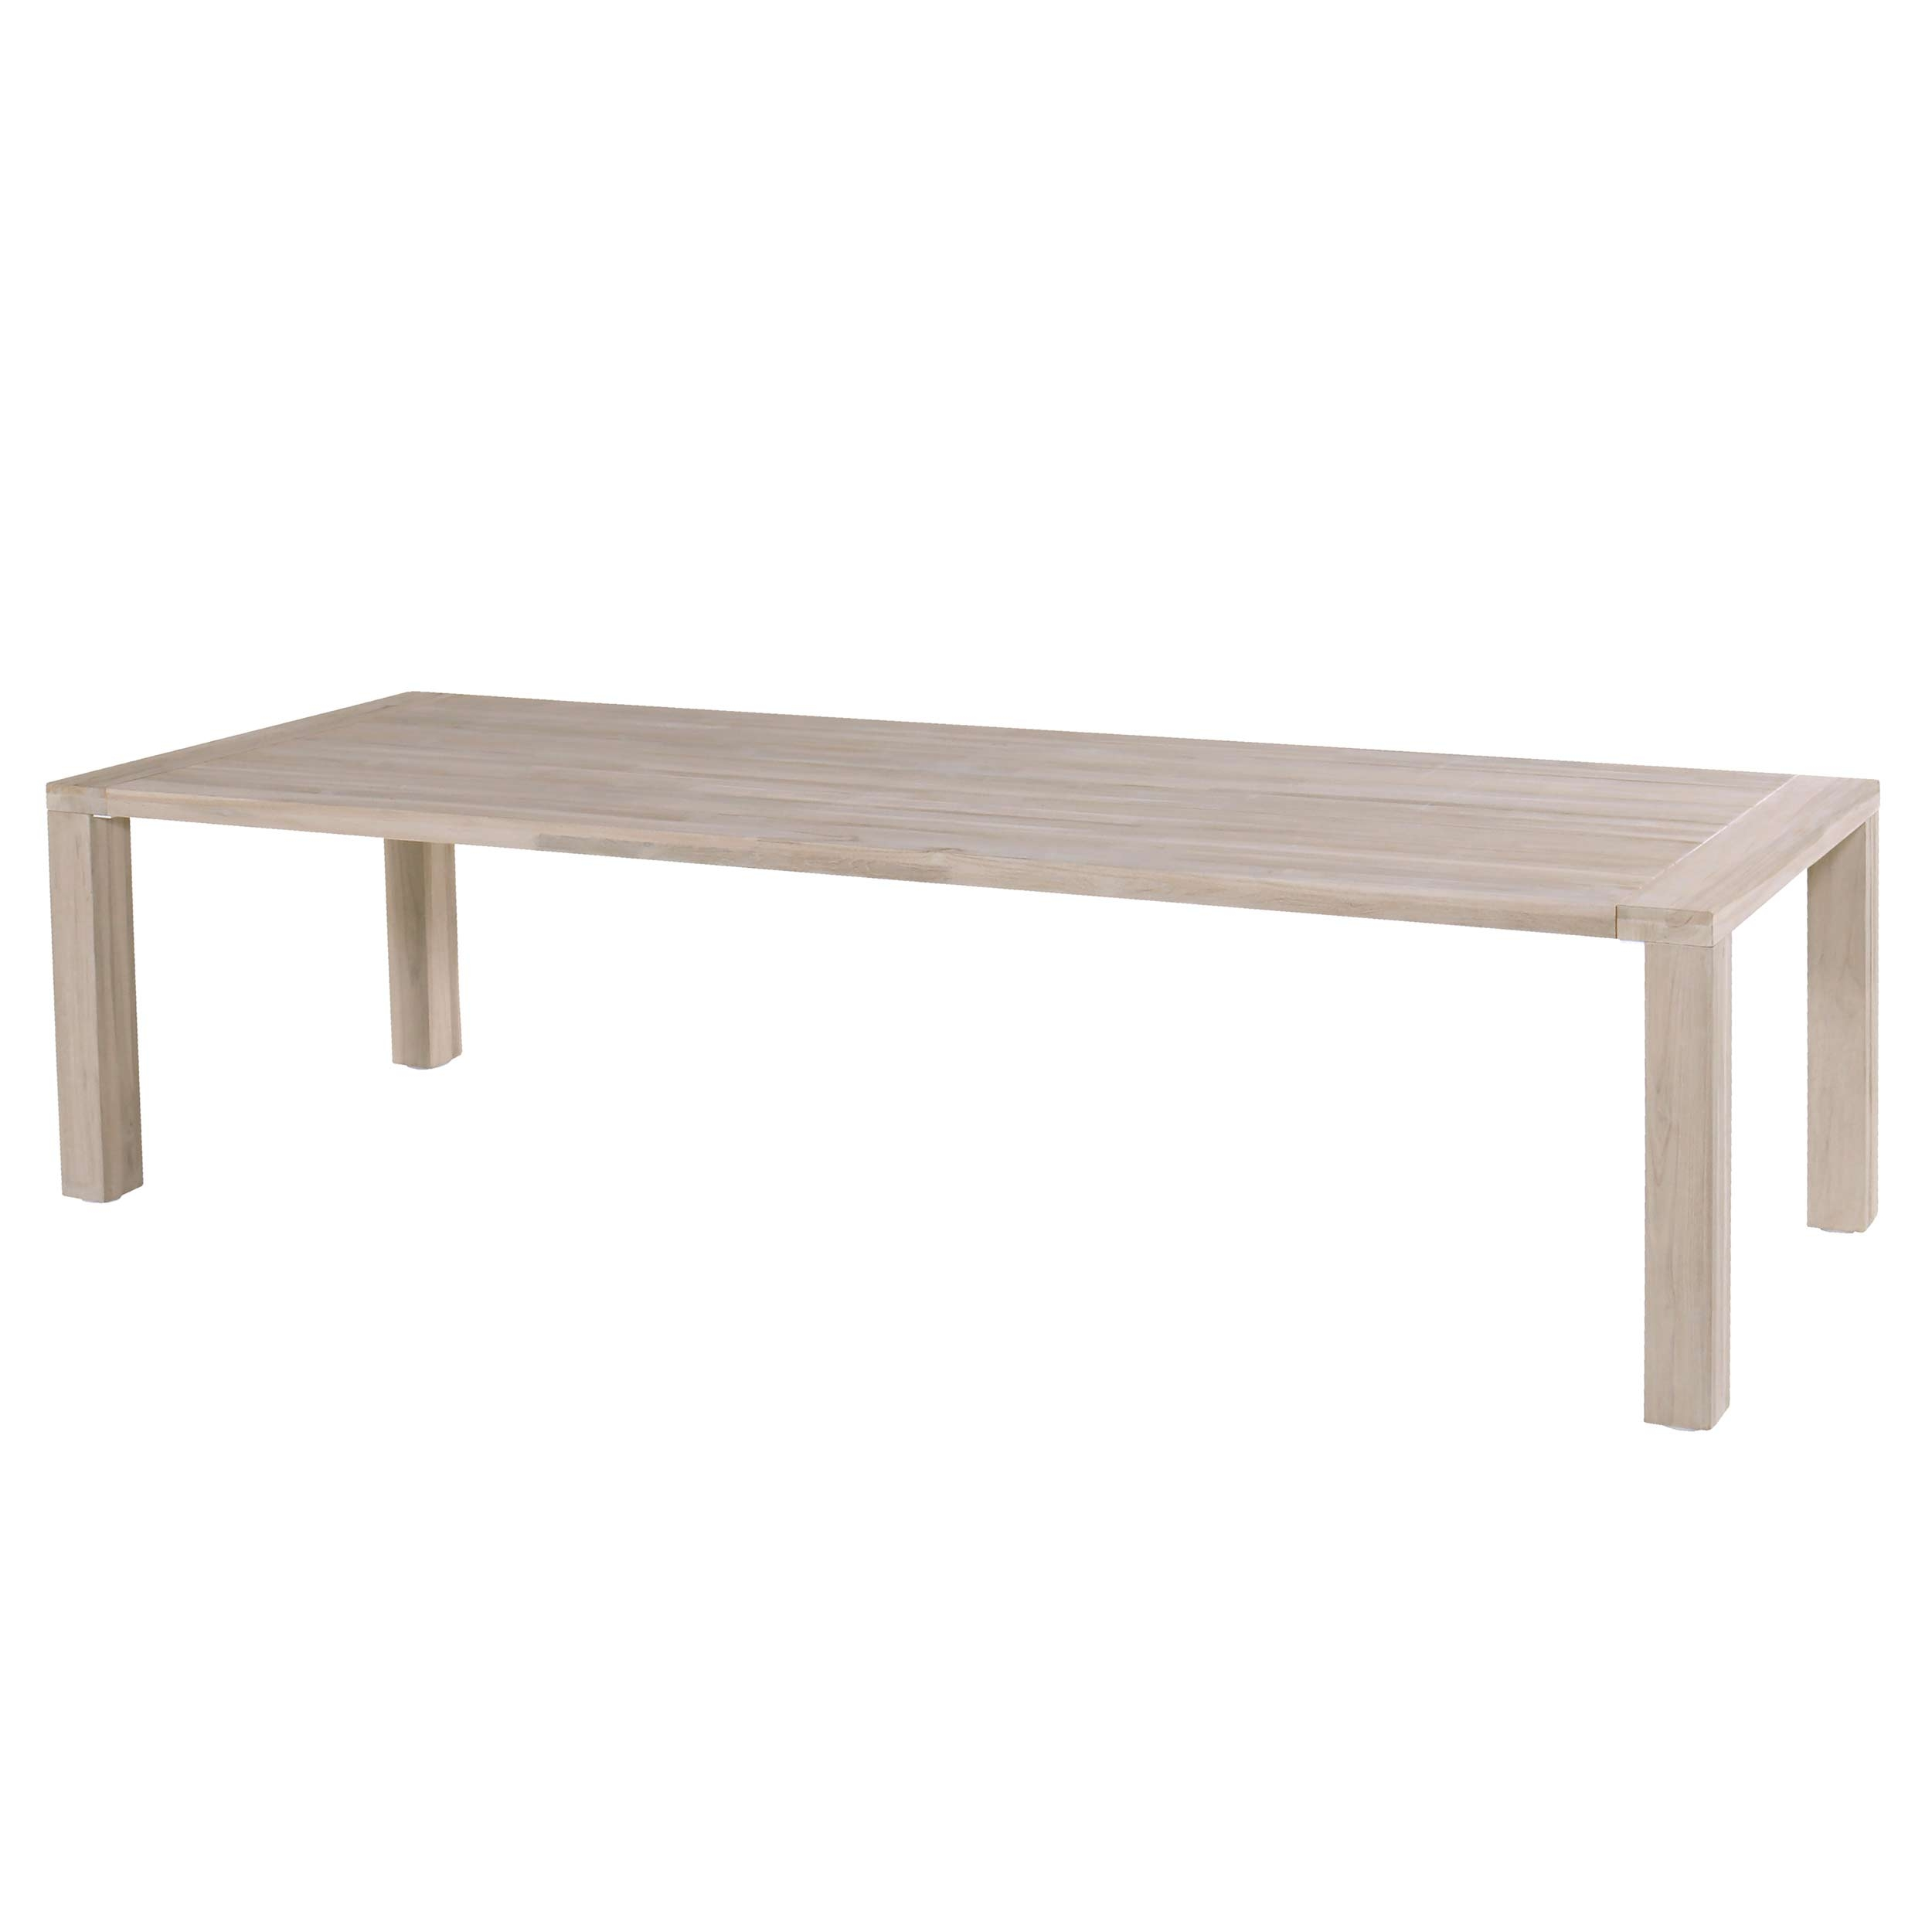 Hartman Sophie Element tafel light grey teak 300x100cm